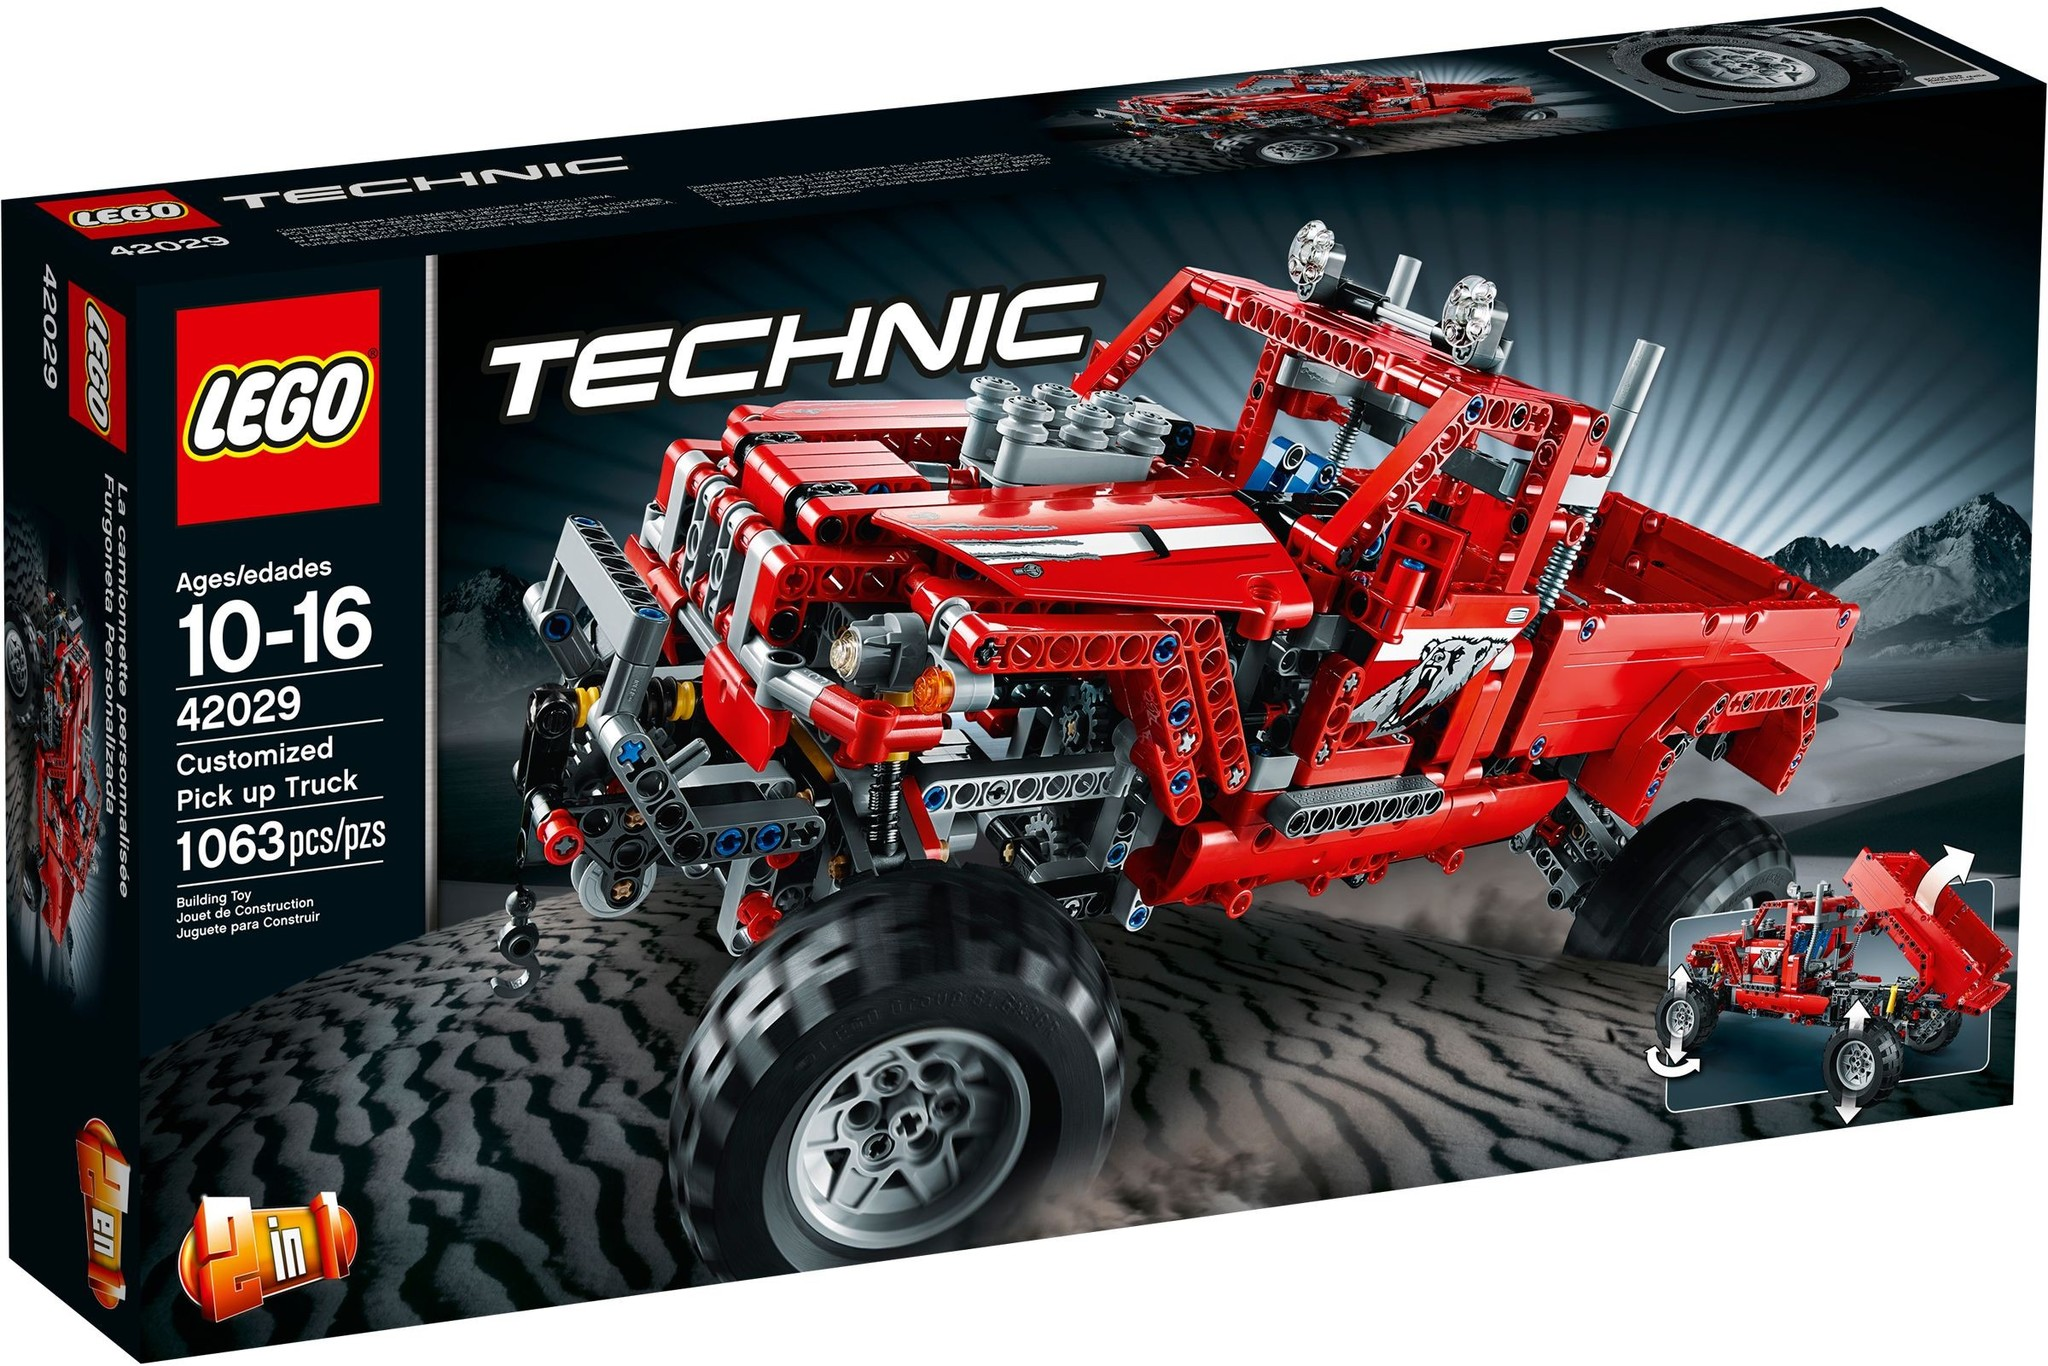 LEGO 42029 - Technic - Customised Pick-Up Truck